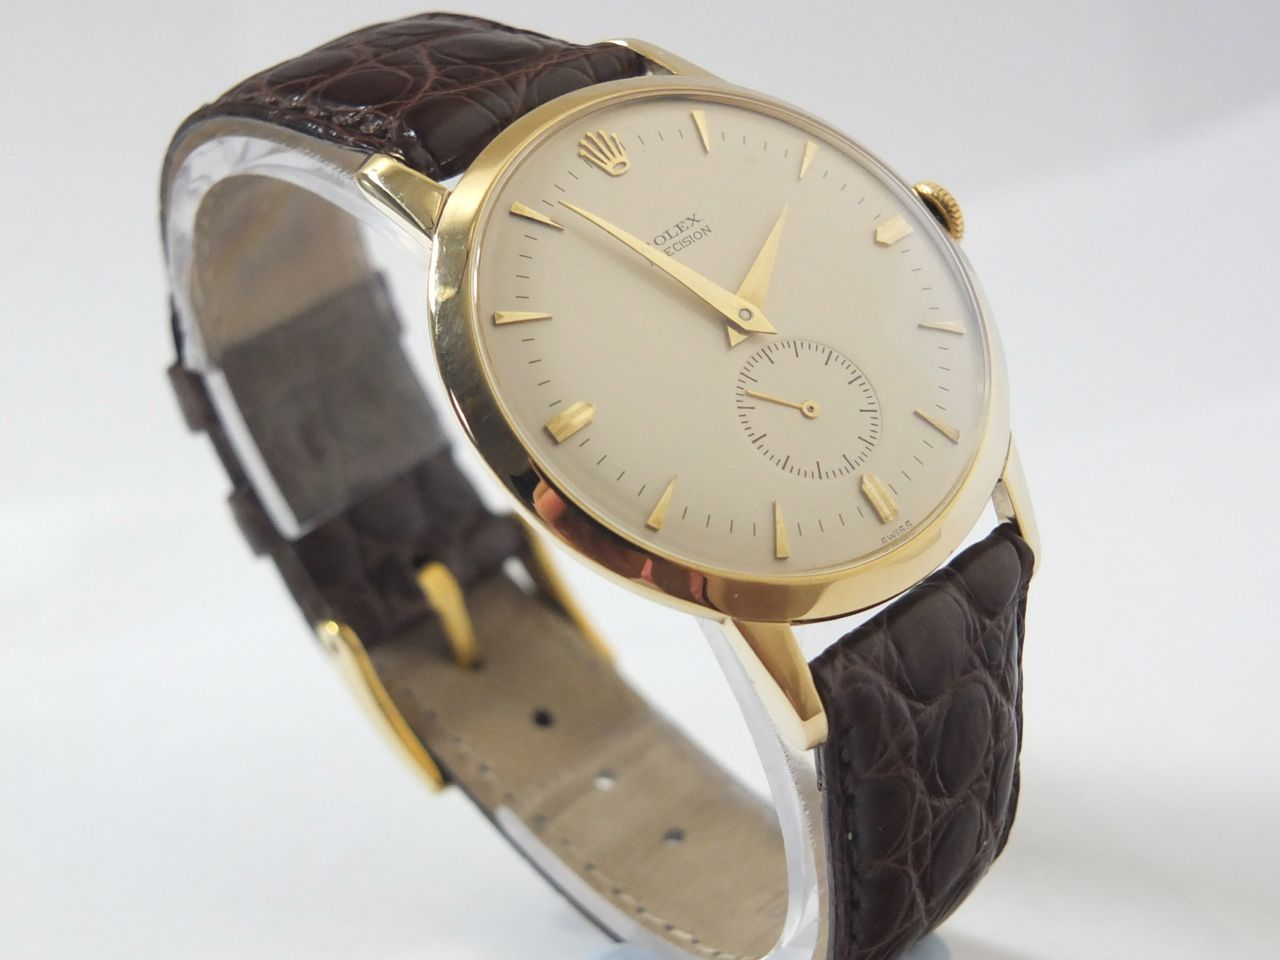 Oversized vintage wristwatch